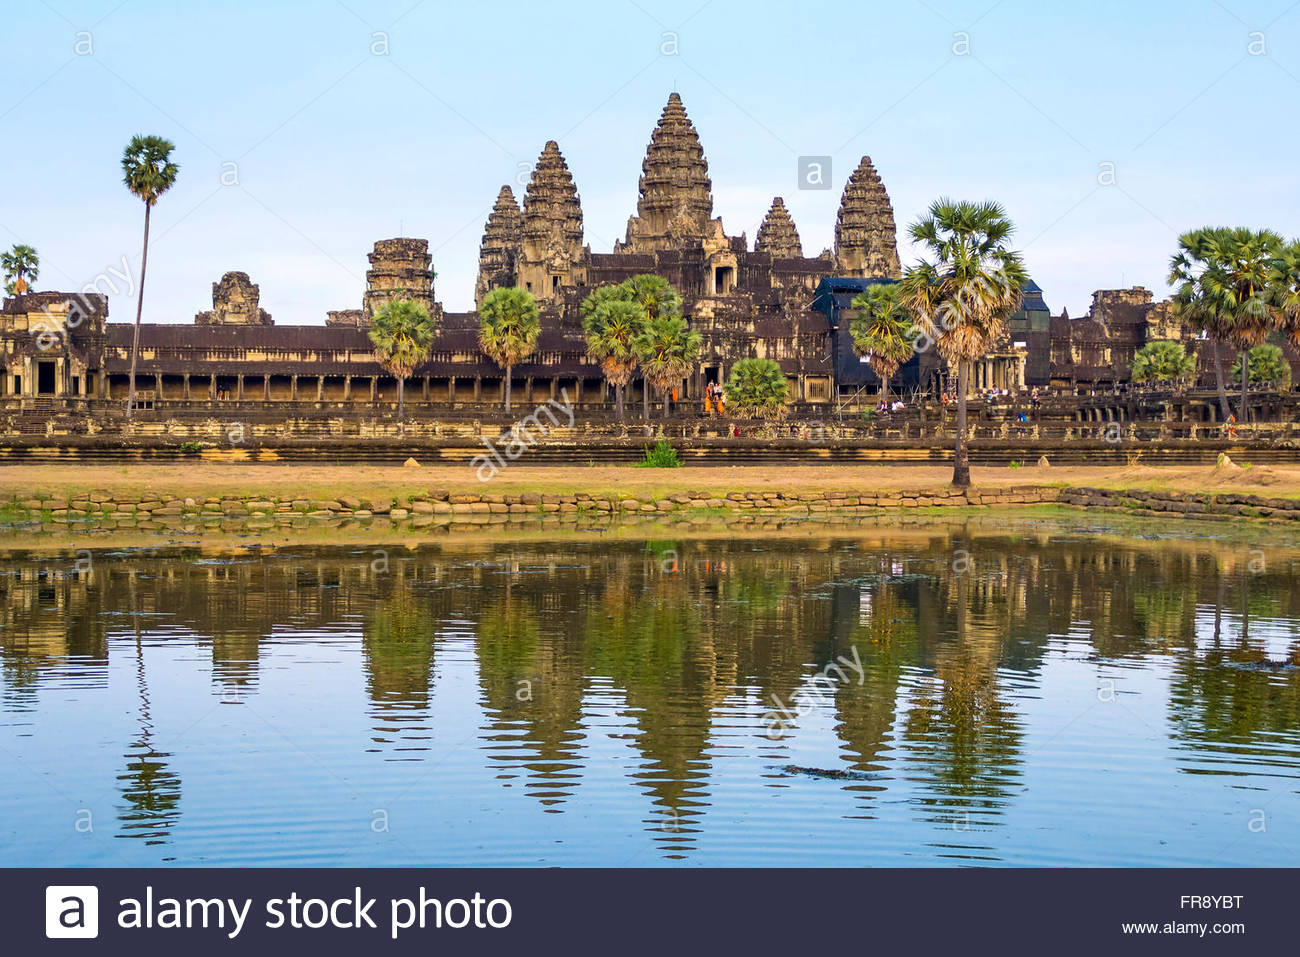 Angkor Wat, UNESCO World Heritage Site, Siem Reap Province, Cambodia - Stock Image